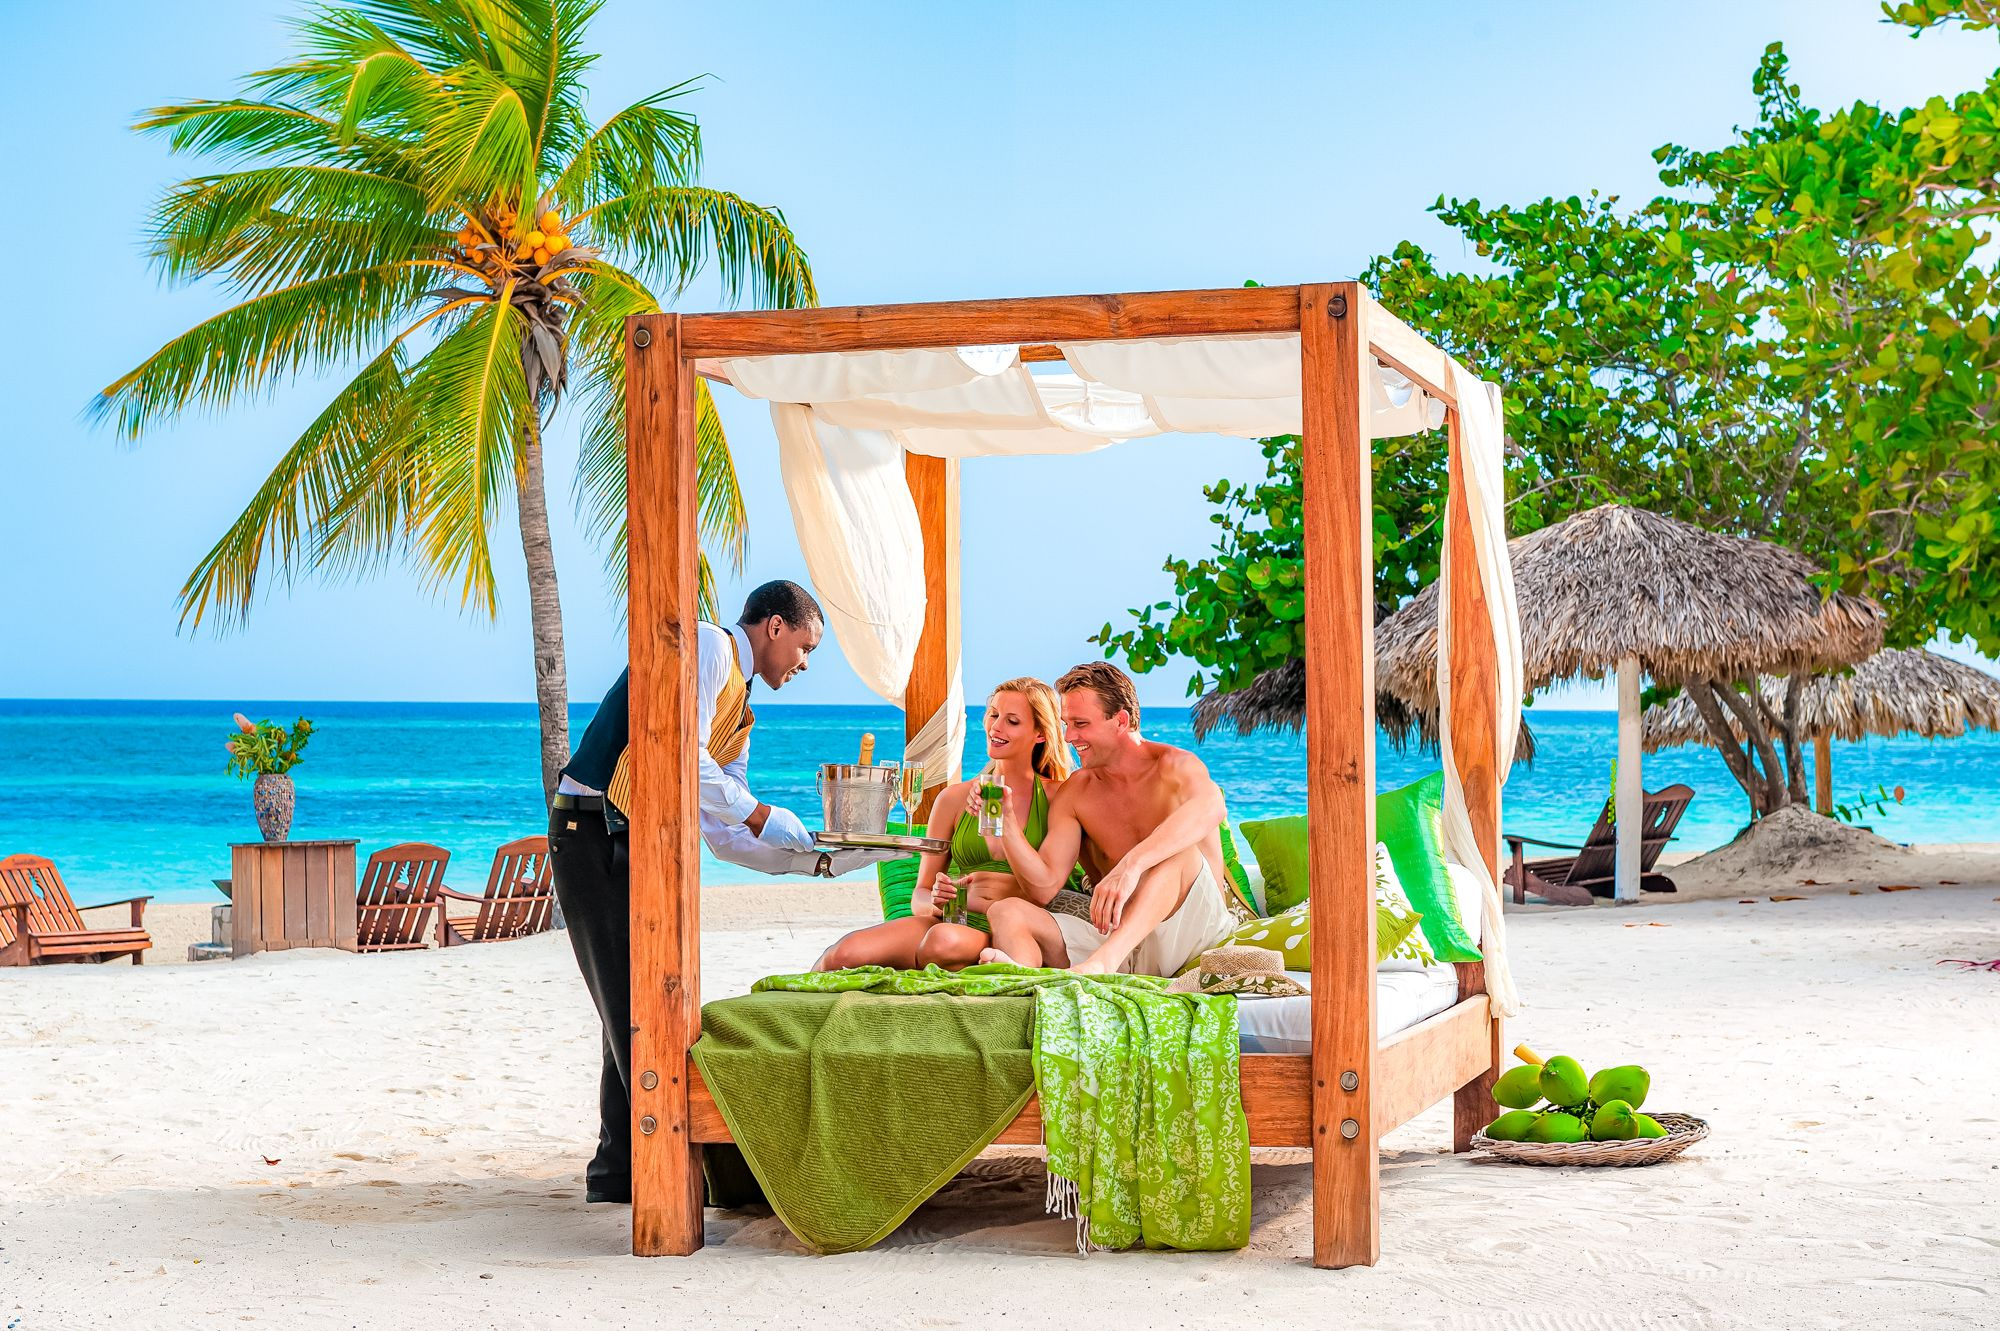 Sandals Montego Bay Couple Beach Lounging